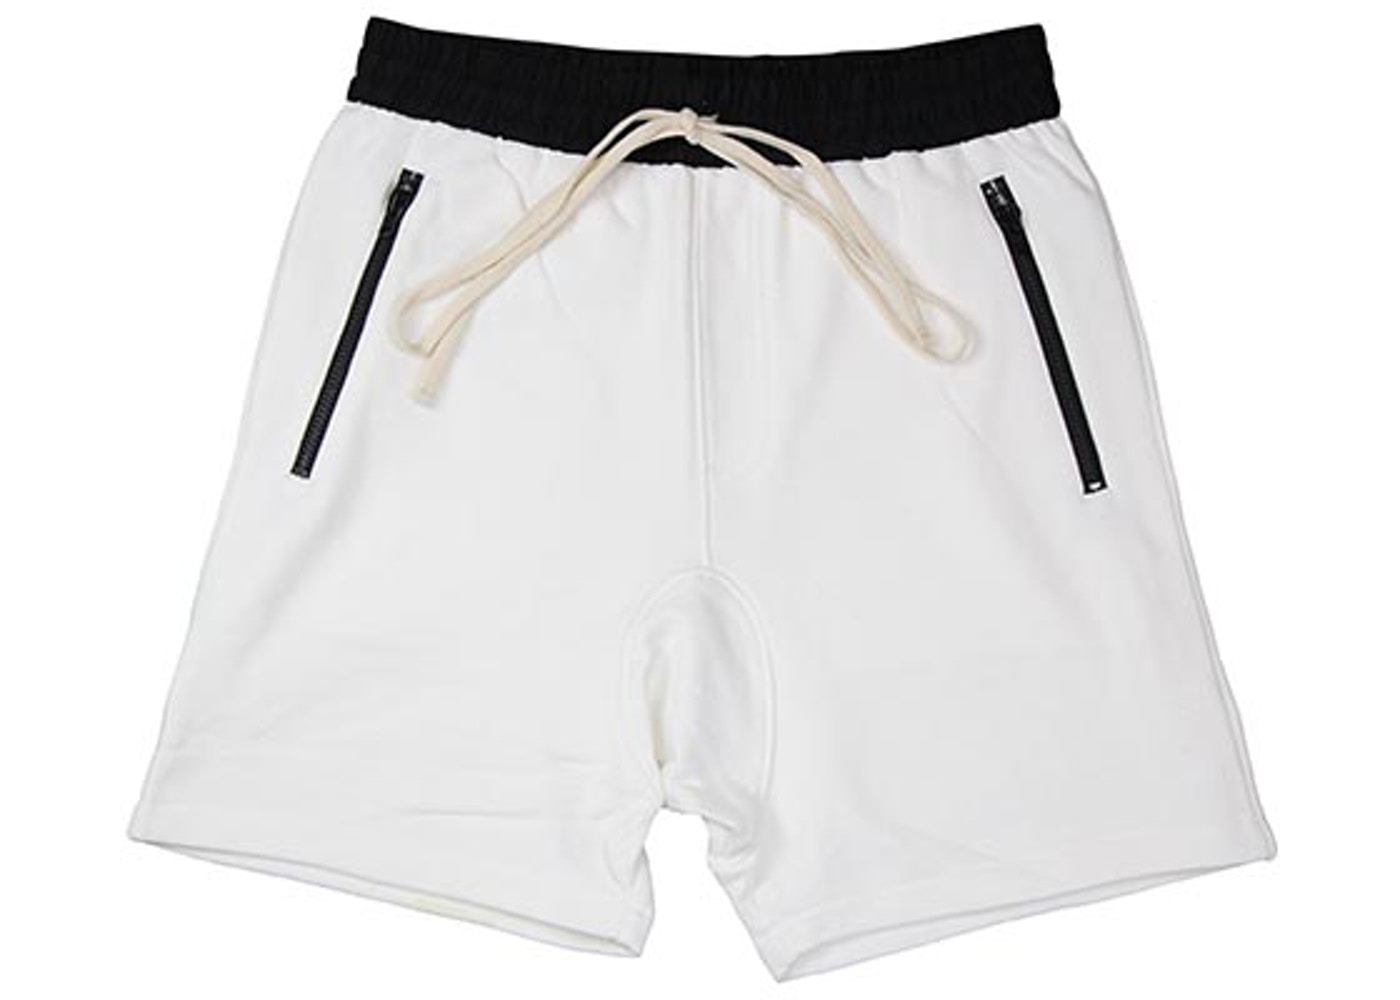 2538201acf7 FEAR OF GOD FOG Essentials Drawstring Shorts White - FOG Essentials